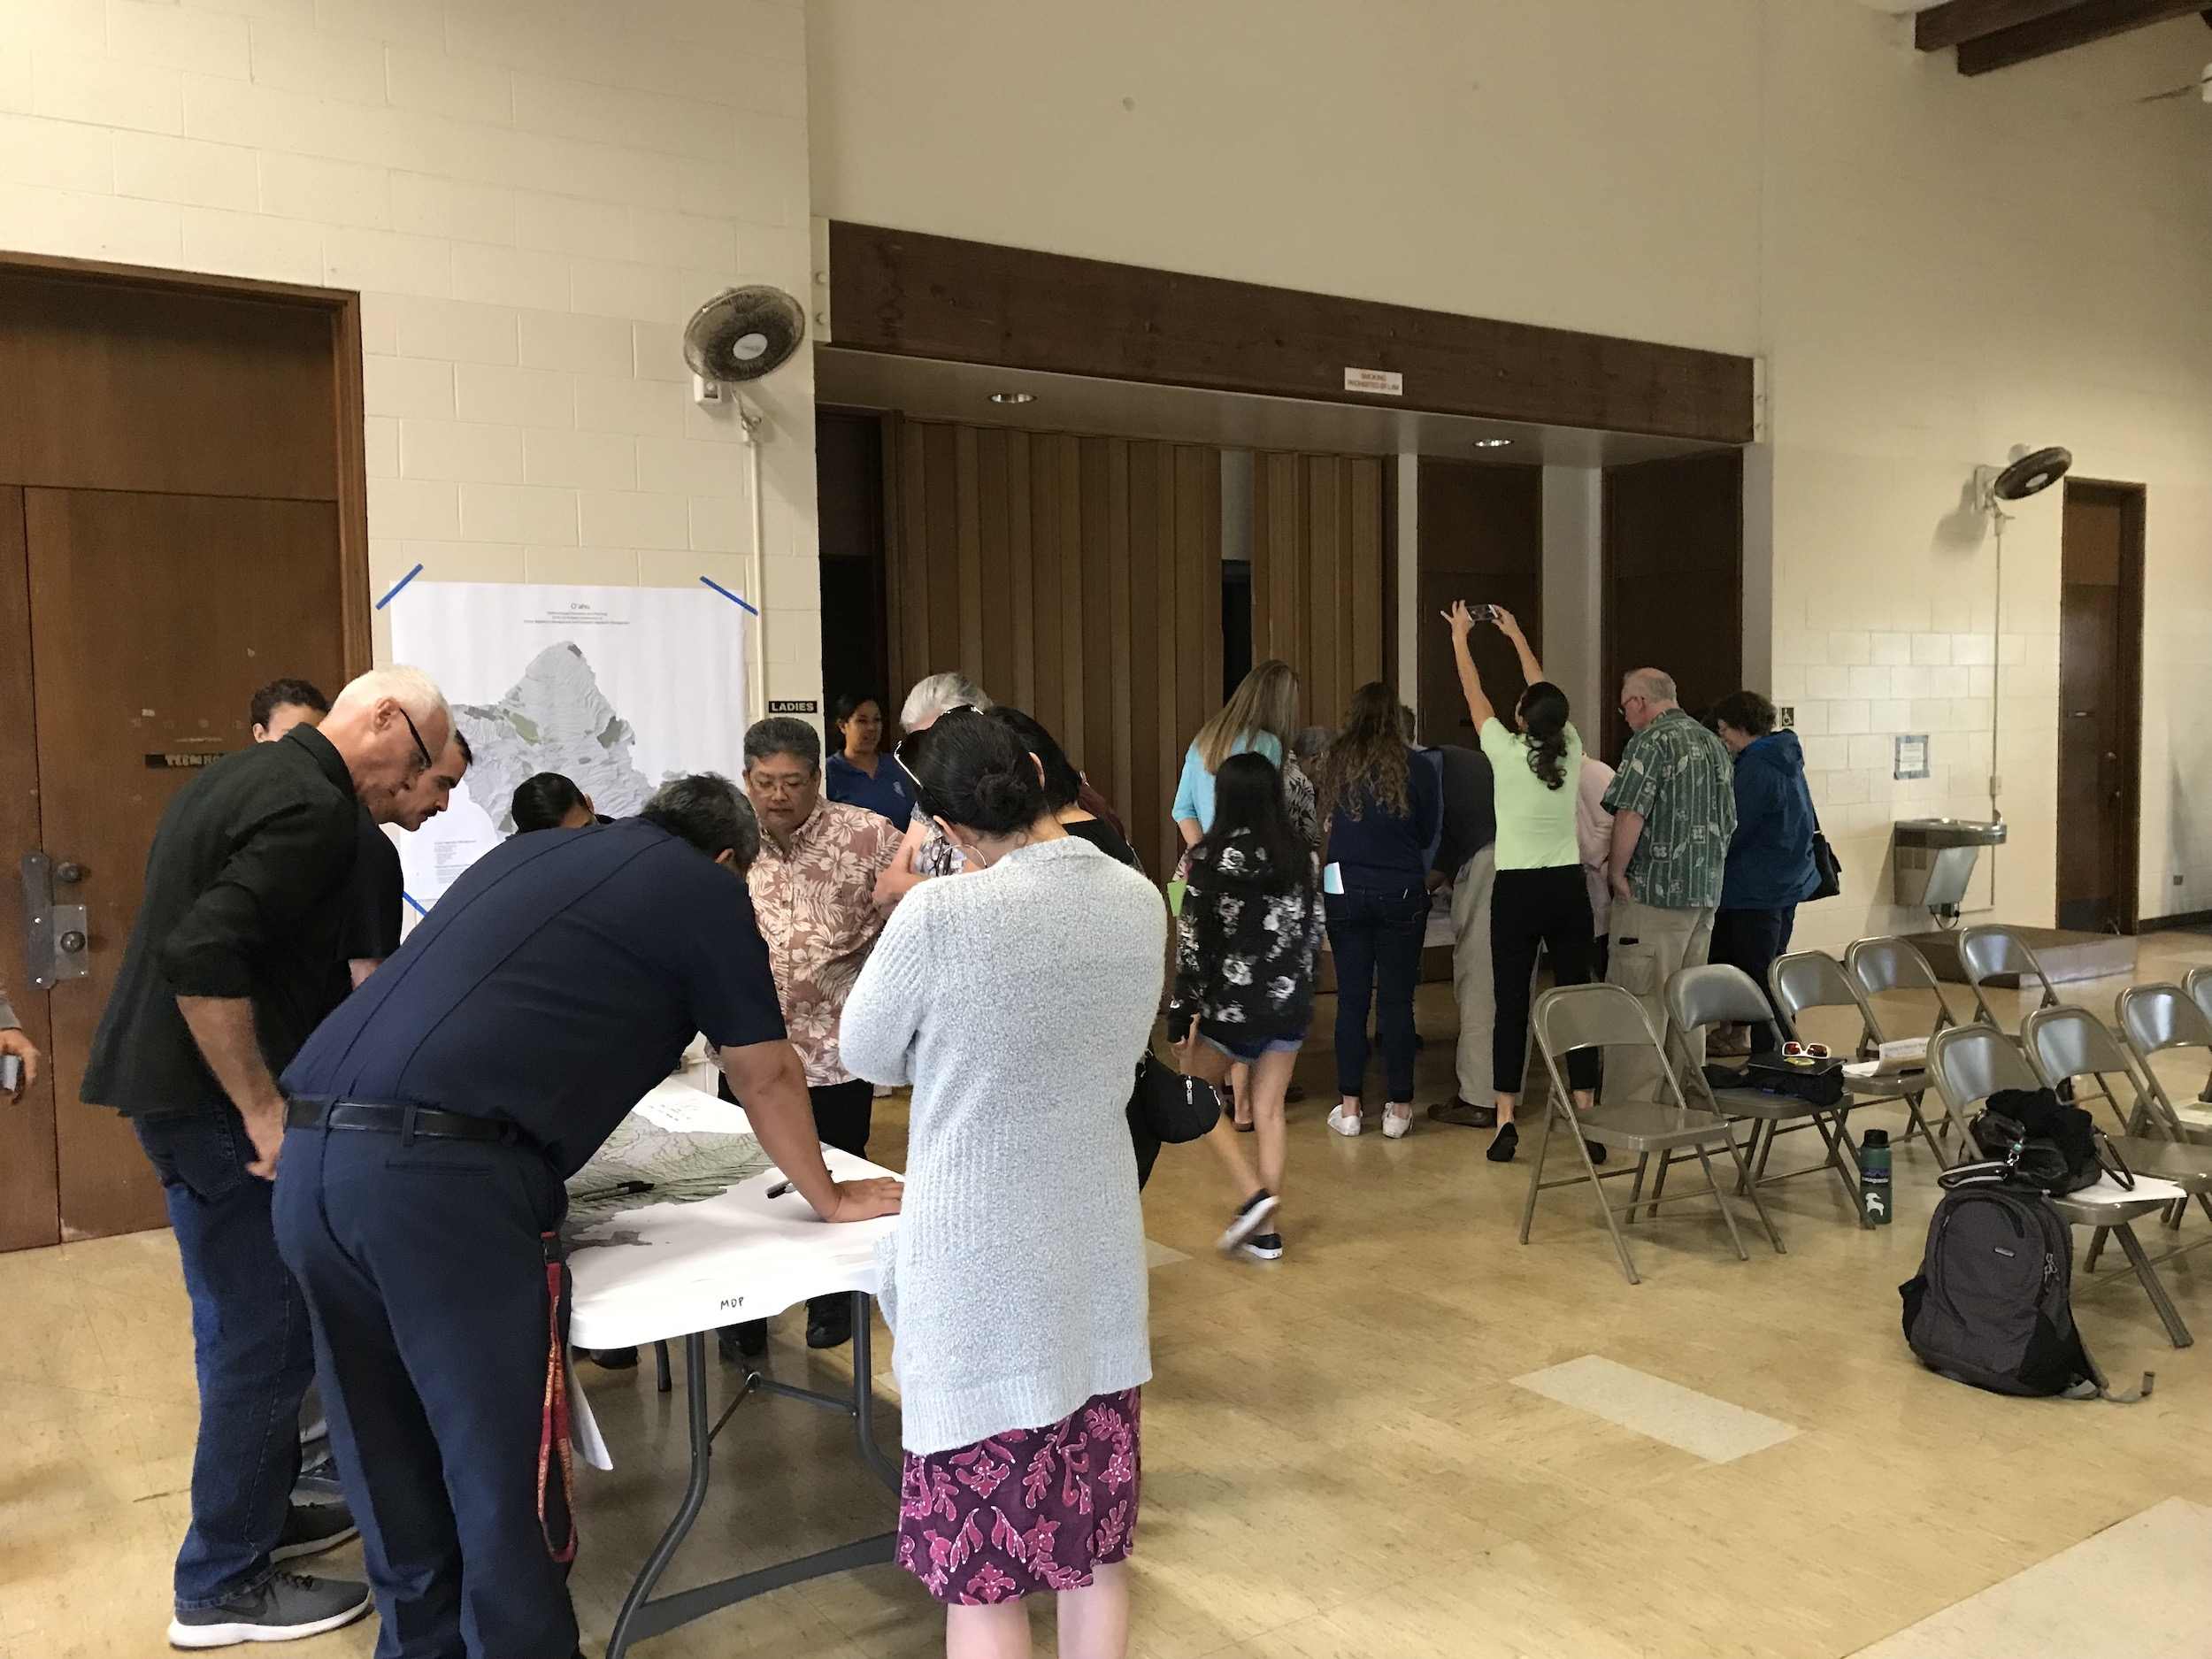 Oahu Vegetative Fuels Management Collaborative Action Planning Workshop_2_19_2019_9.jpg